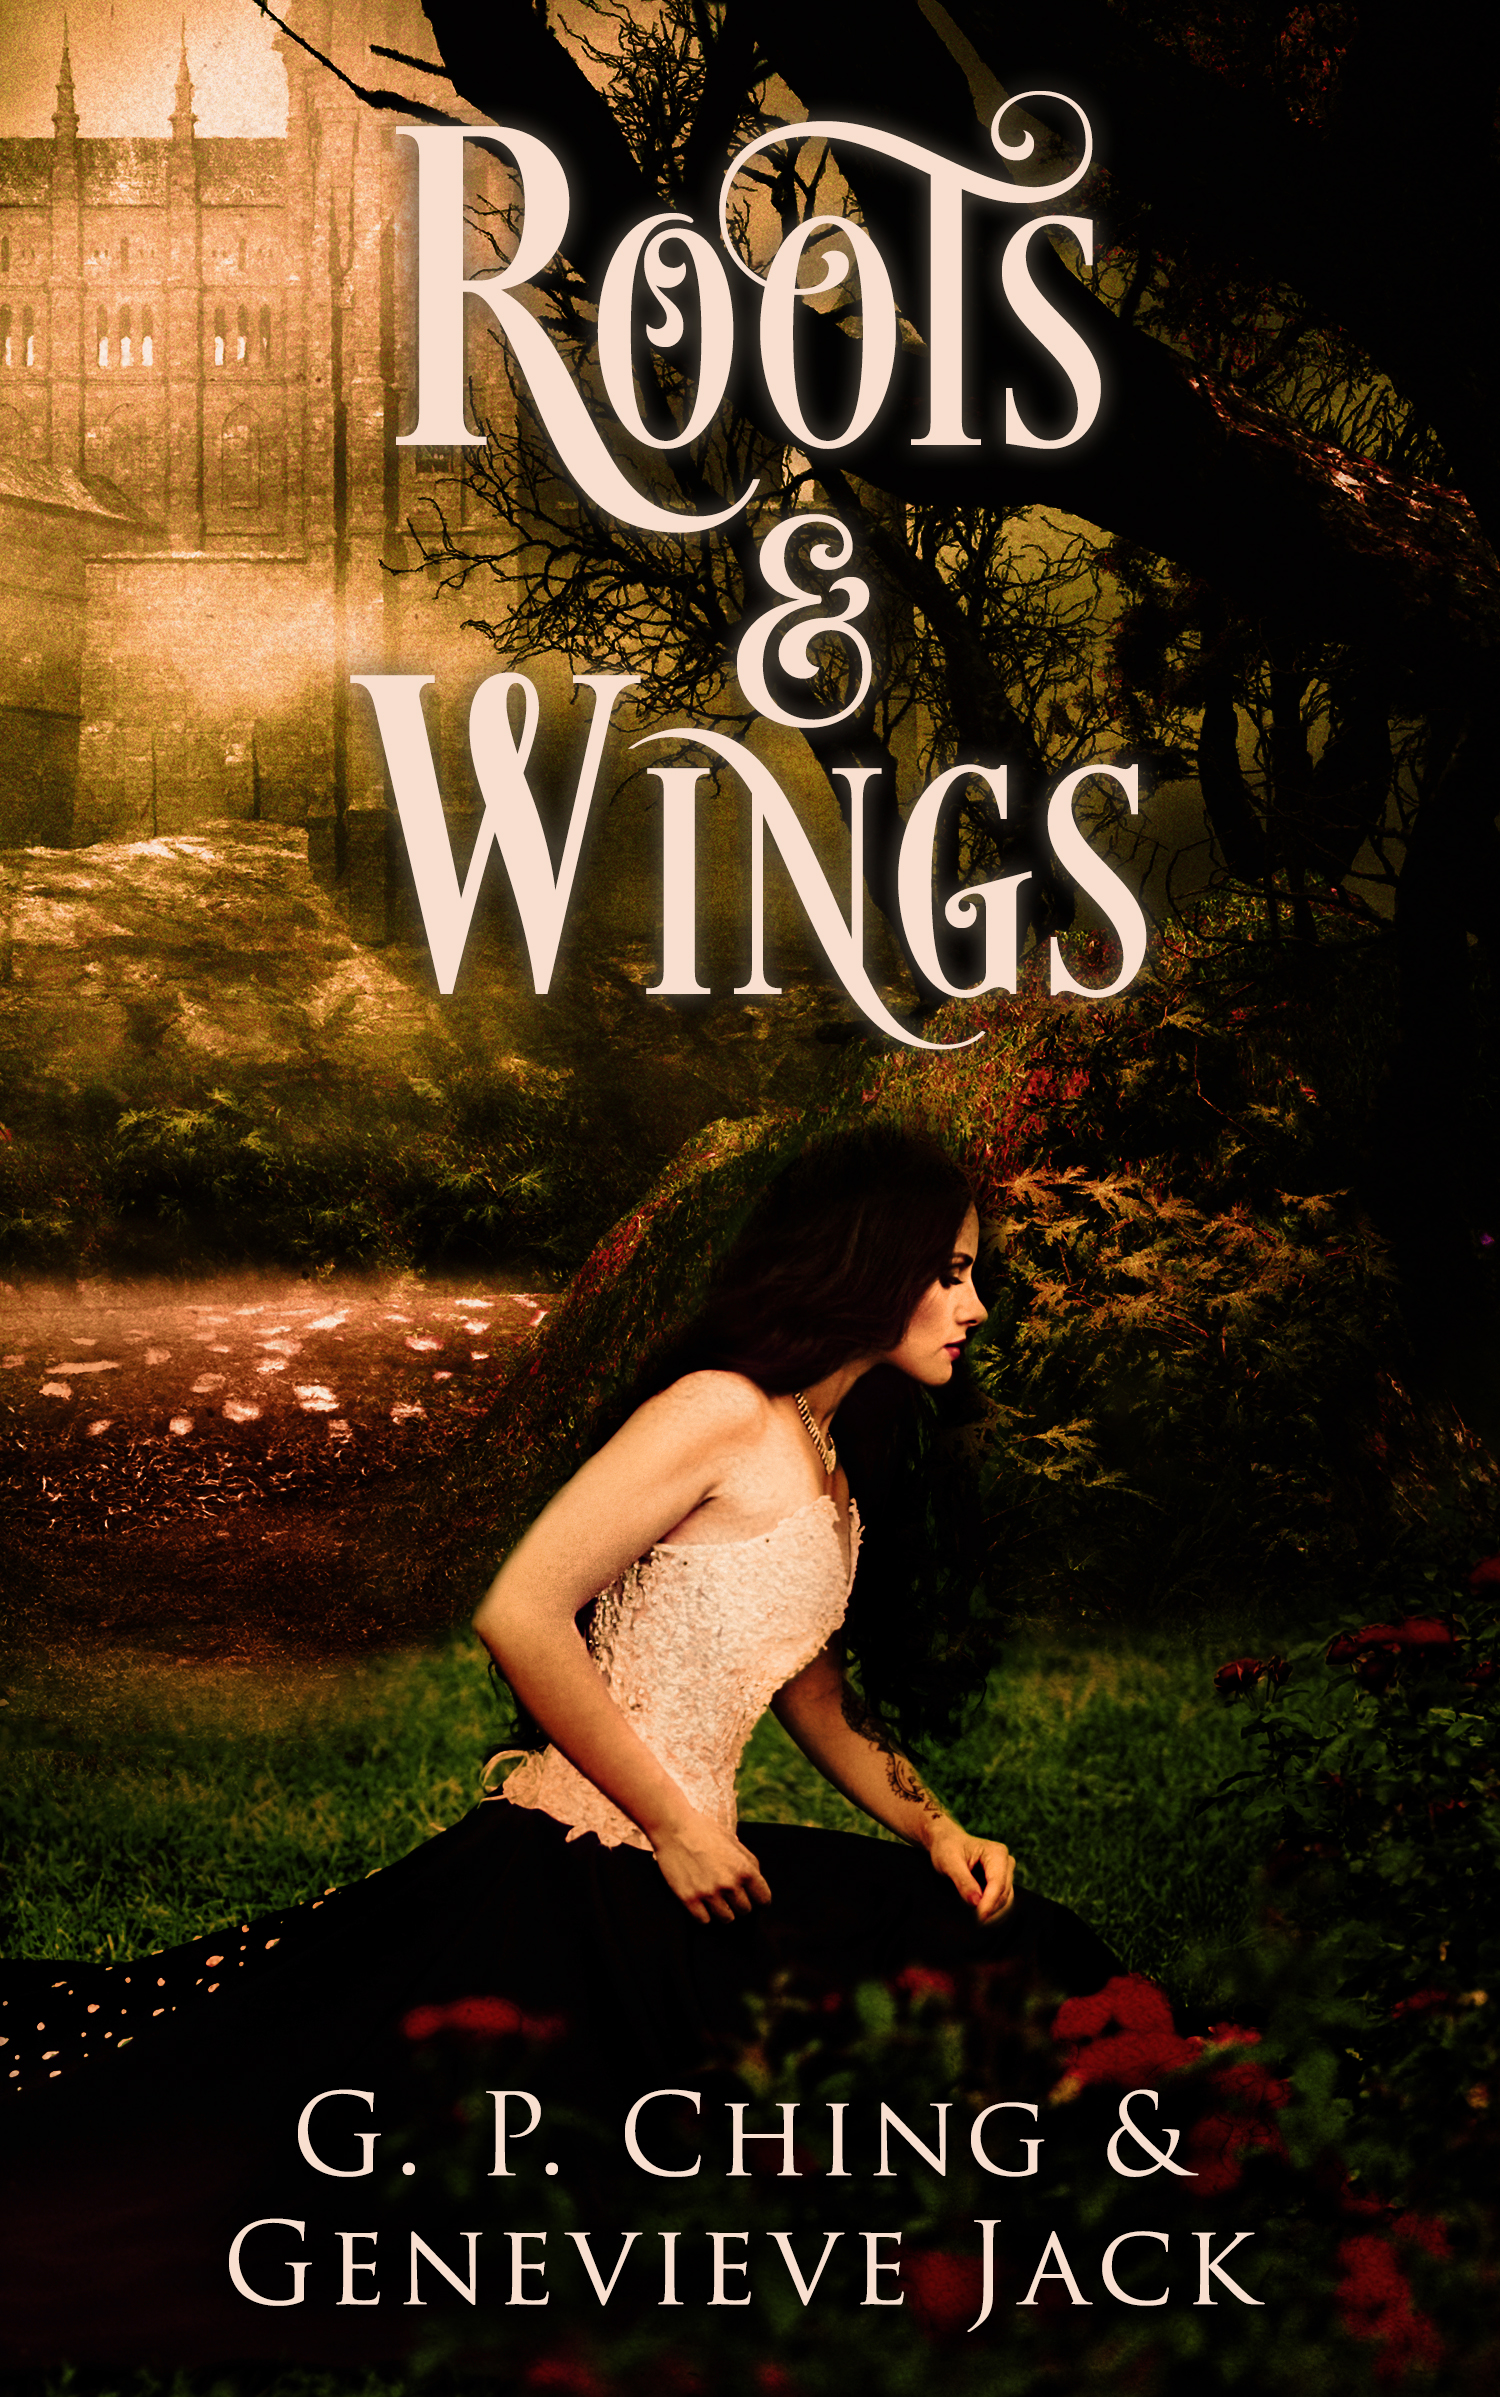 Roots and Wings by GP Ching and Genevieve Jack